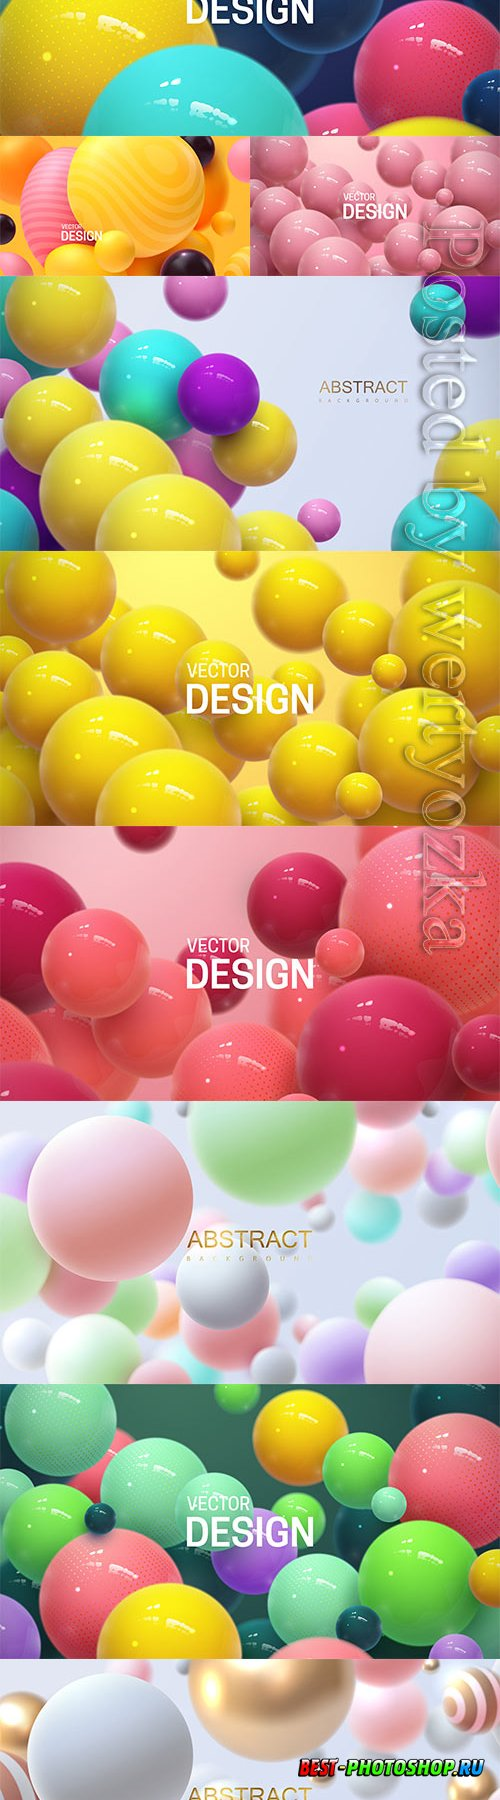 Abstract vector background with 3d spheres